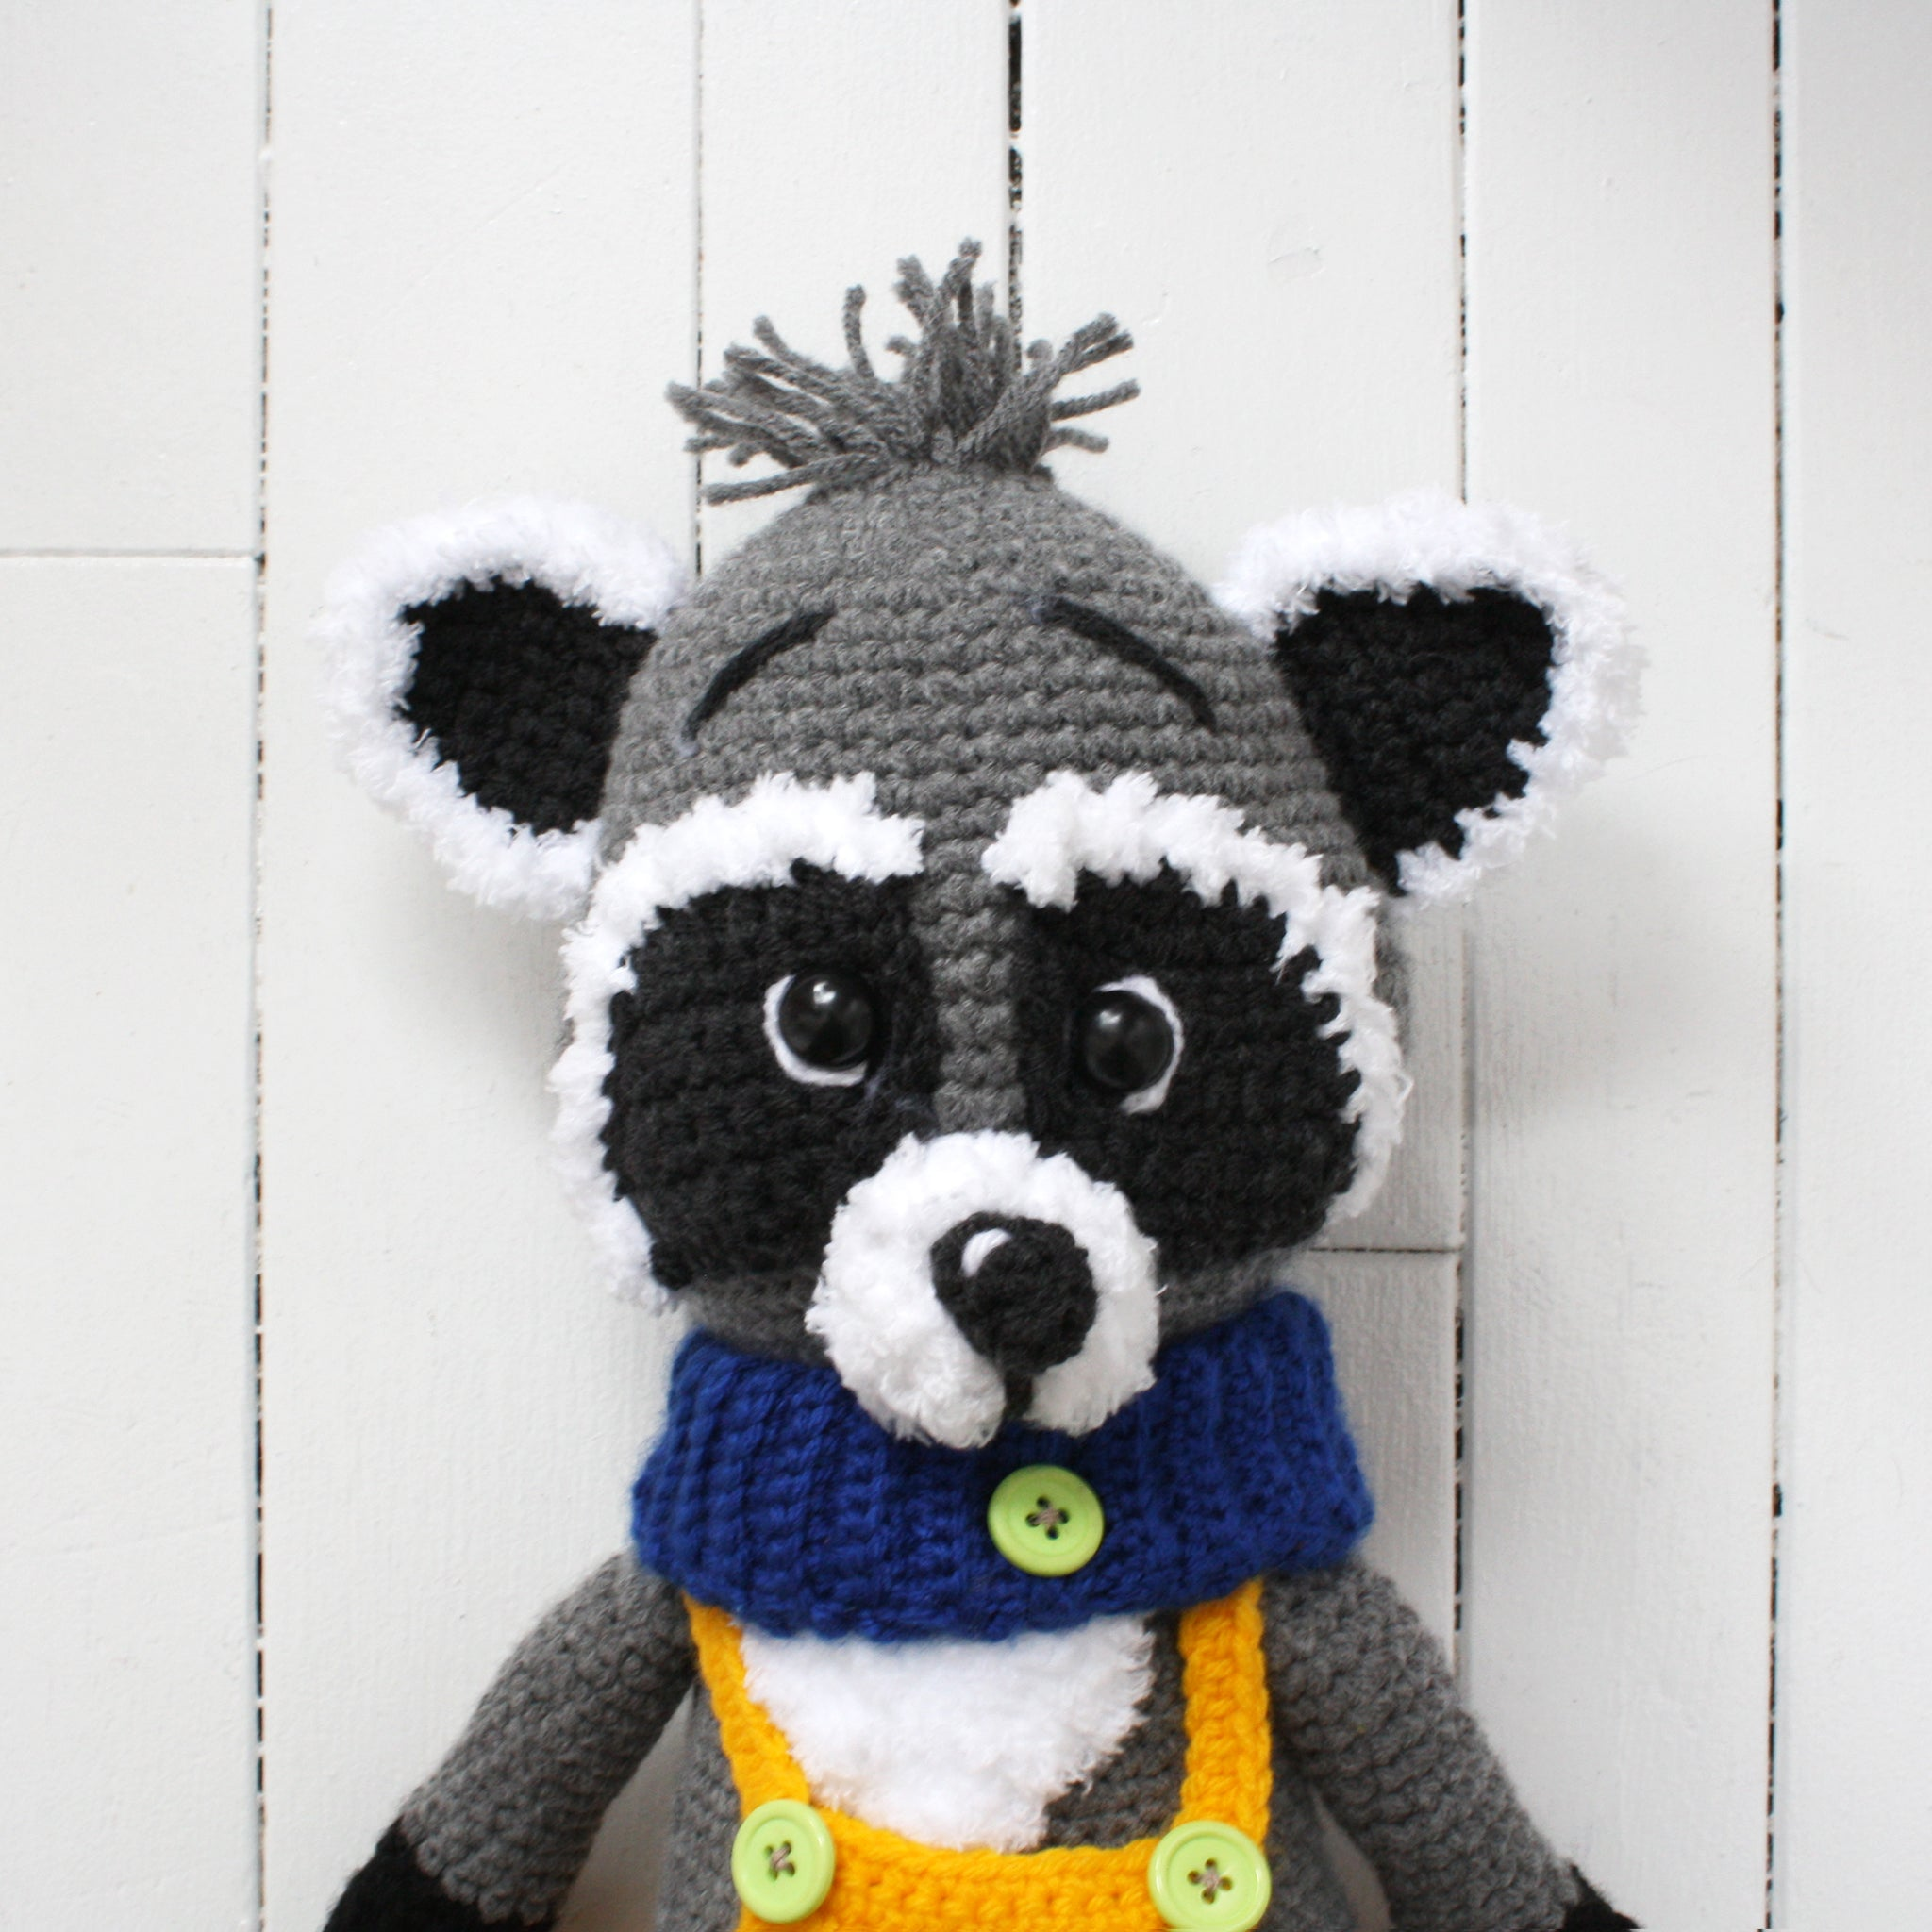 Close up of a crocheted raccoon doll with blue scarf and yellow overalls